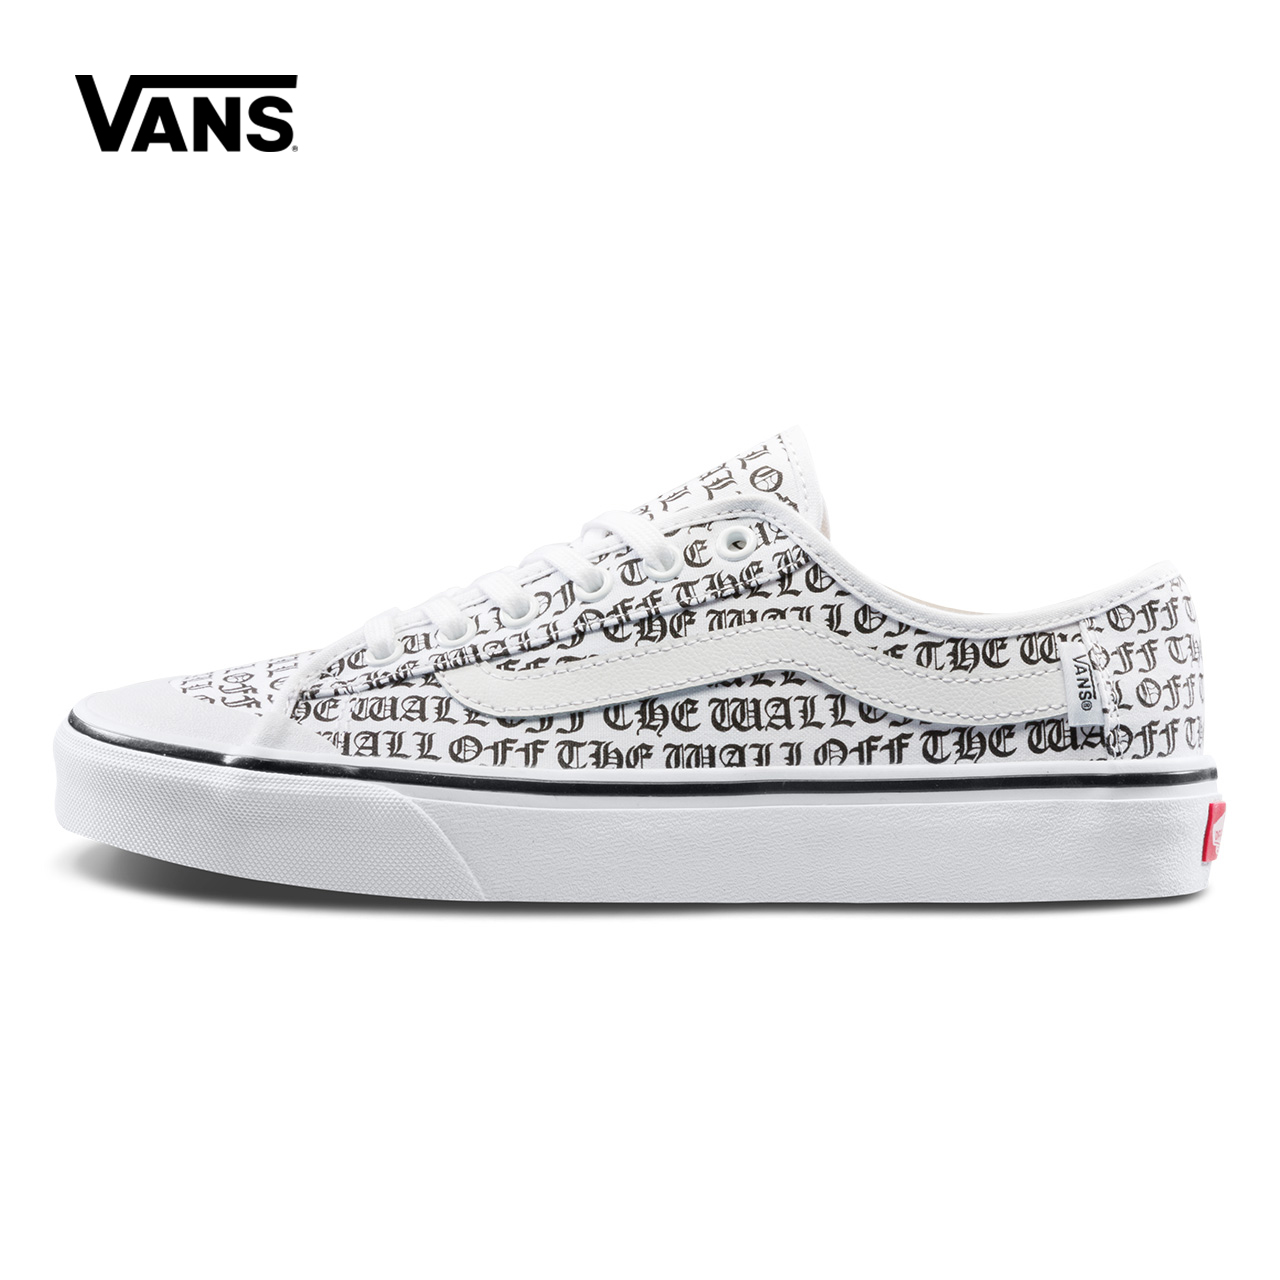 Unisex Vans Shoes White Letter Printed Low-top Skateboarding Shoes Sneakers Sport Outdoor Canvas Vans Sneaker VN0A3QXZT1Z adriatica часы adriatica 3143 2113q коллекция twin